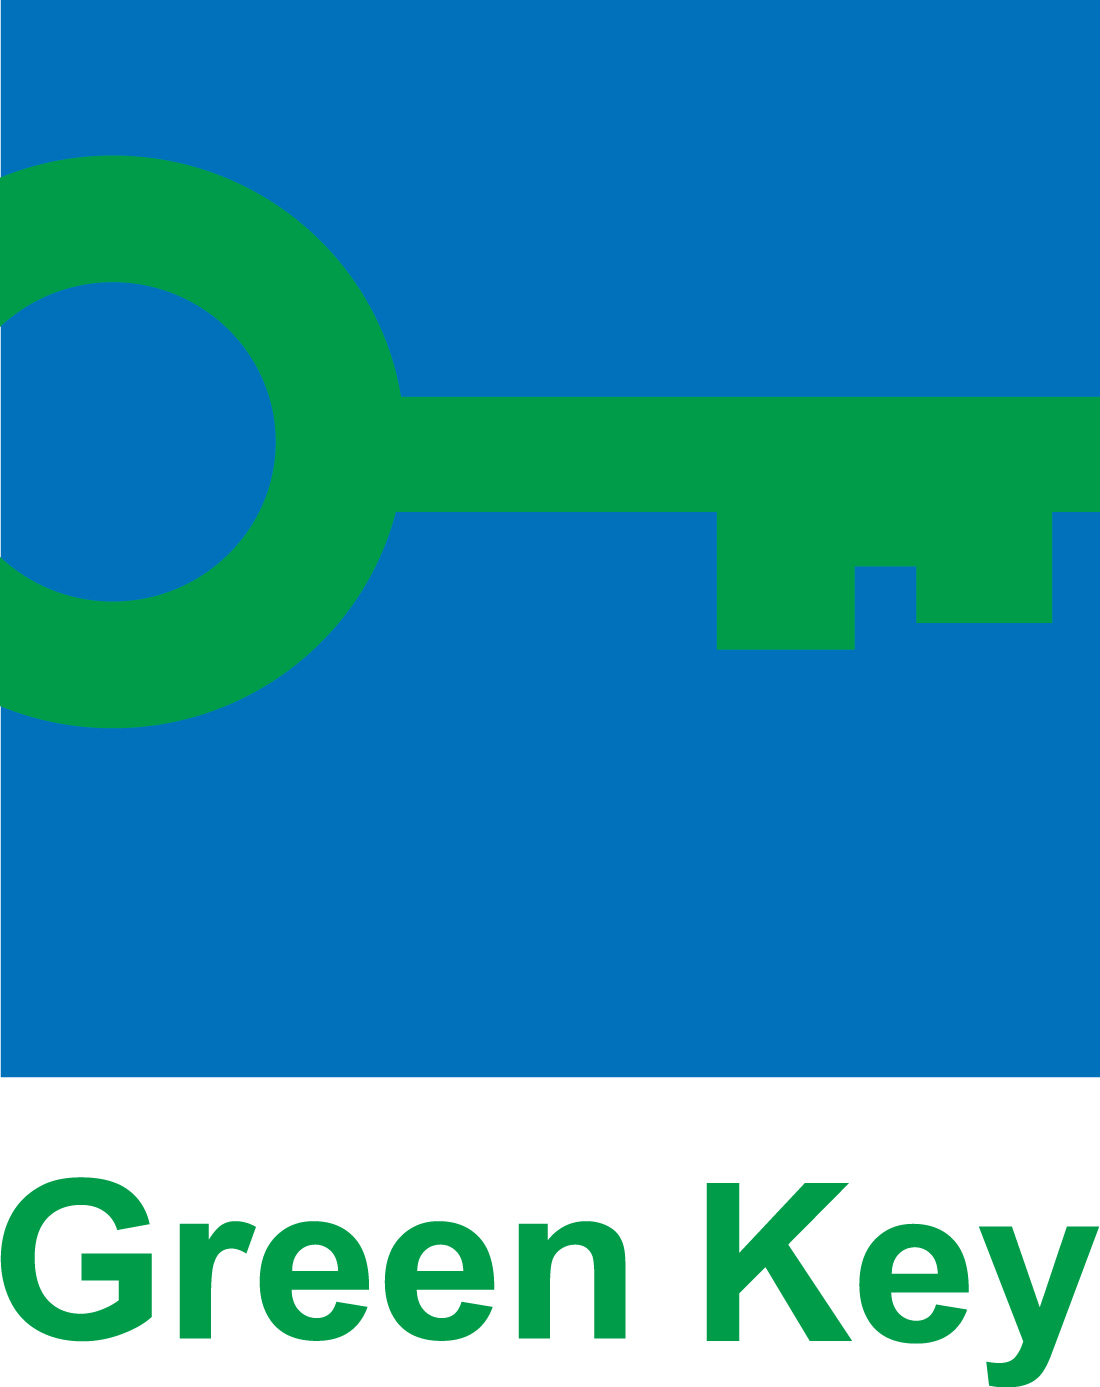 Green Key logo with text